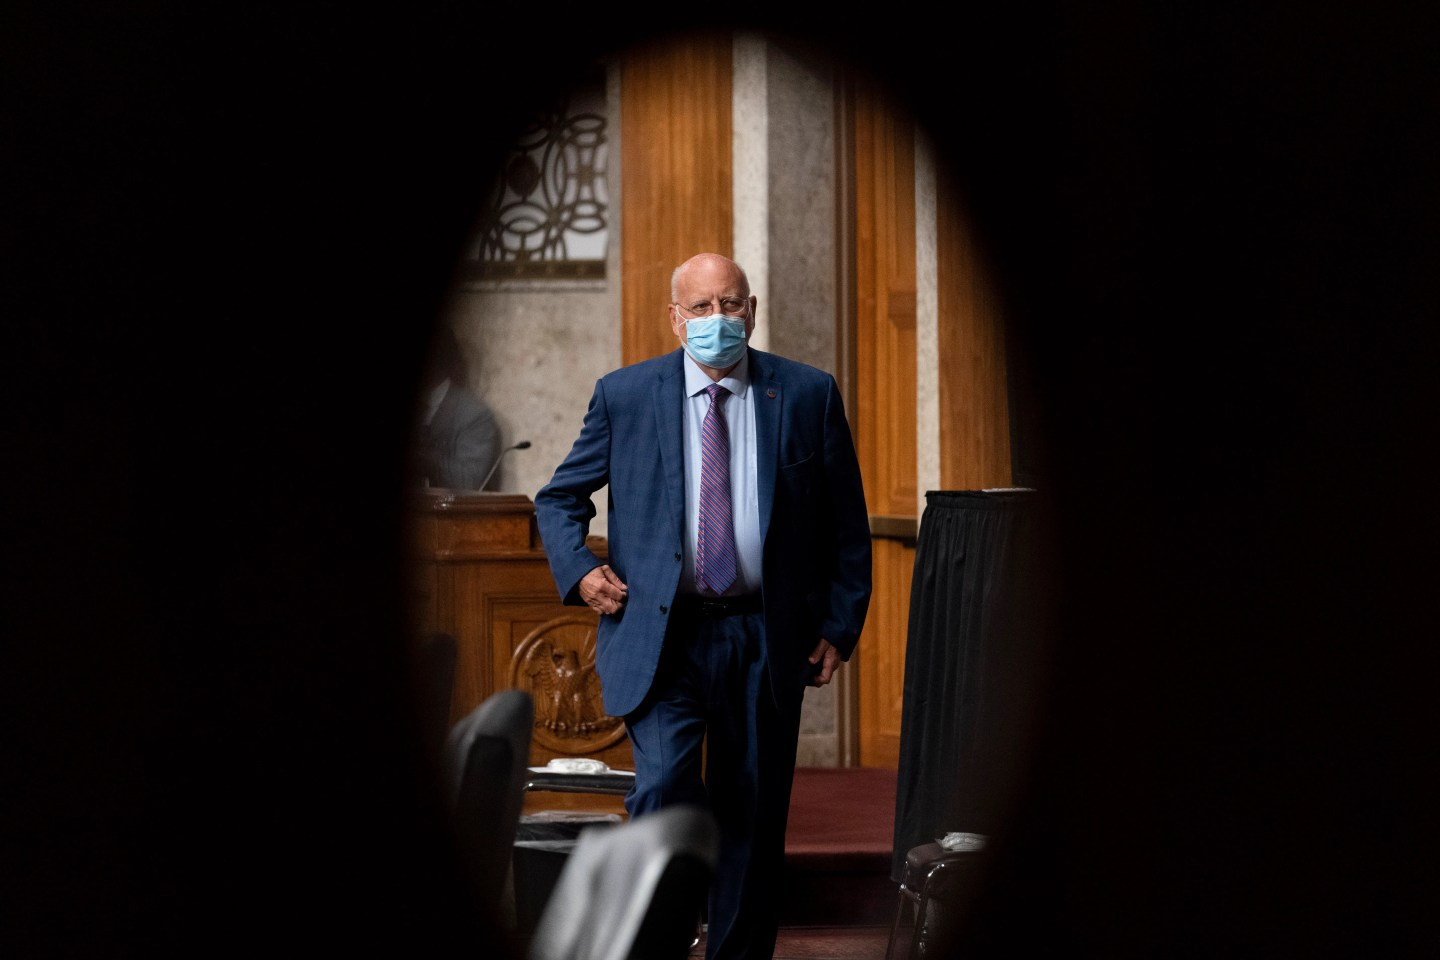 Dr. Robert Redfield seen through a door window at the Senate appropriations subcommittee hearing about coronavirus response efforts on Sept. 16.